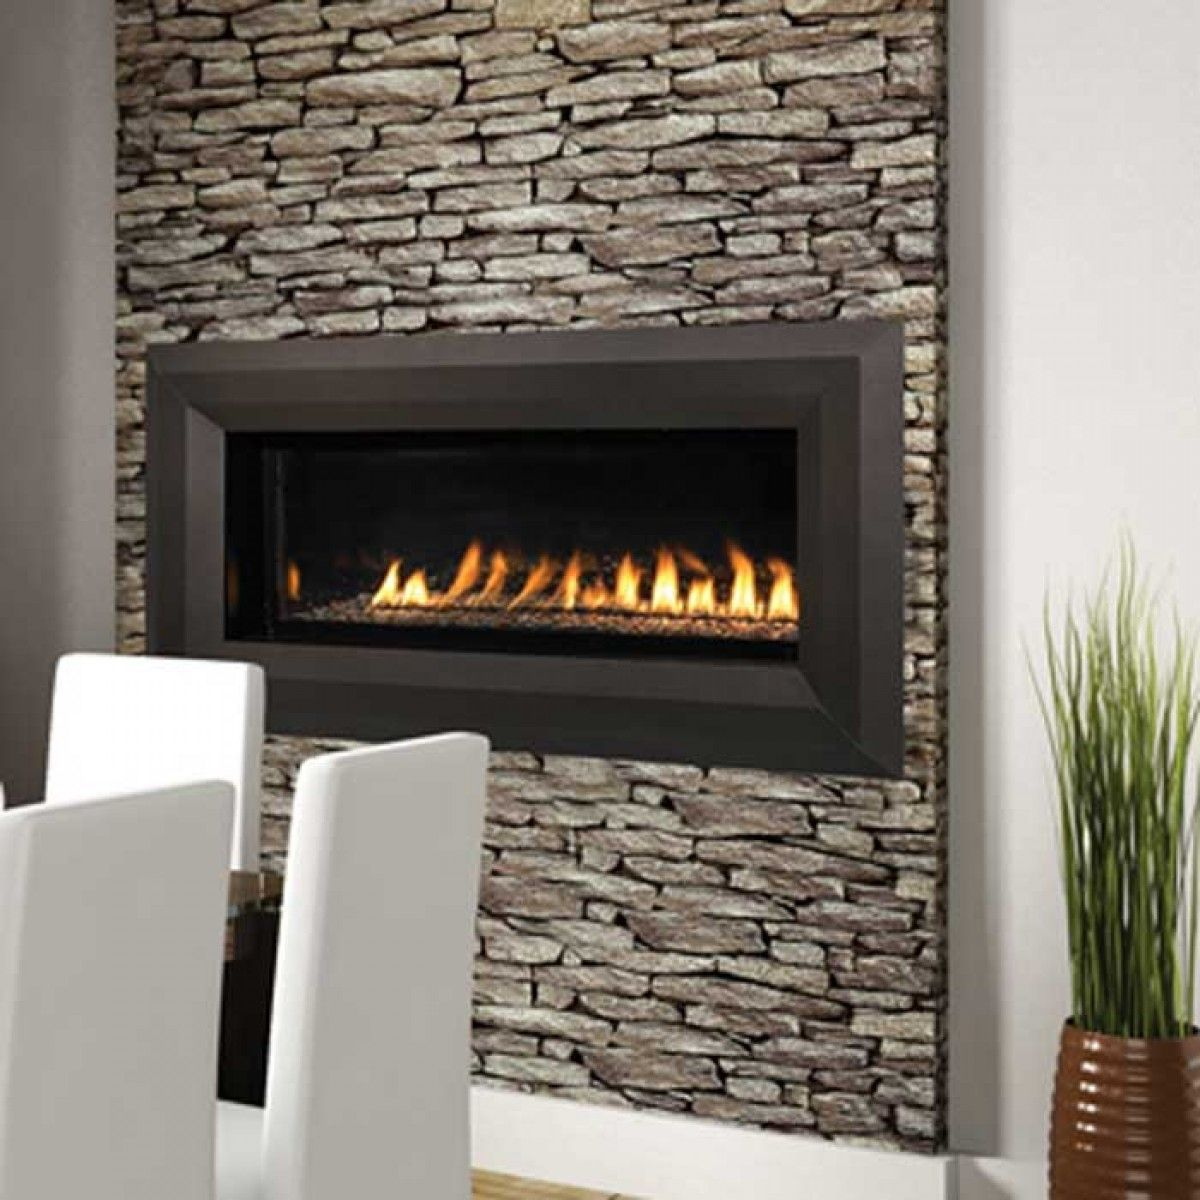 Linear fireplace and Free gas